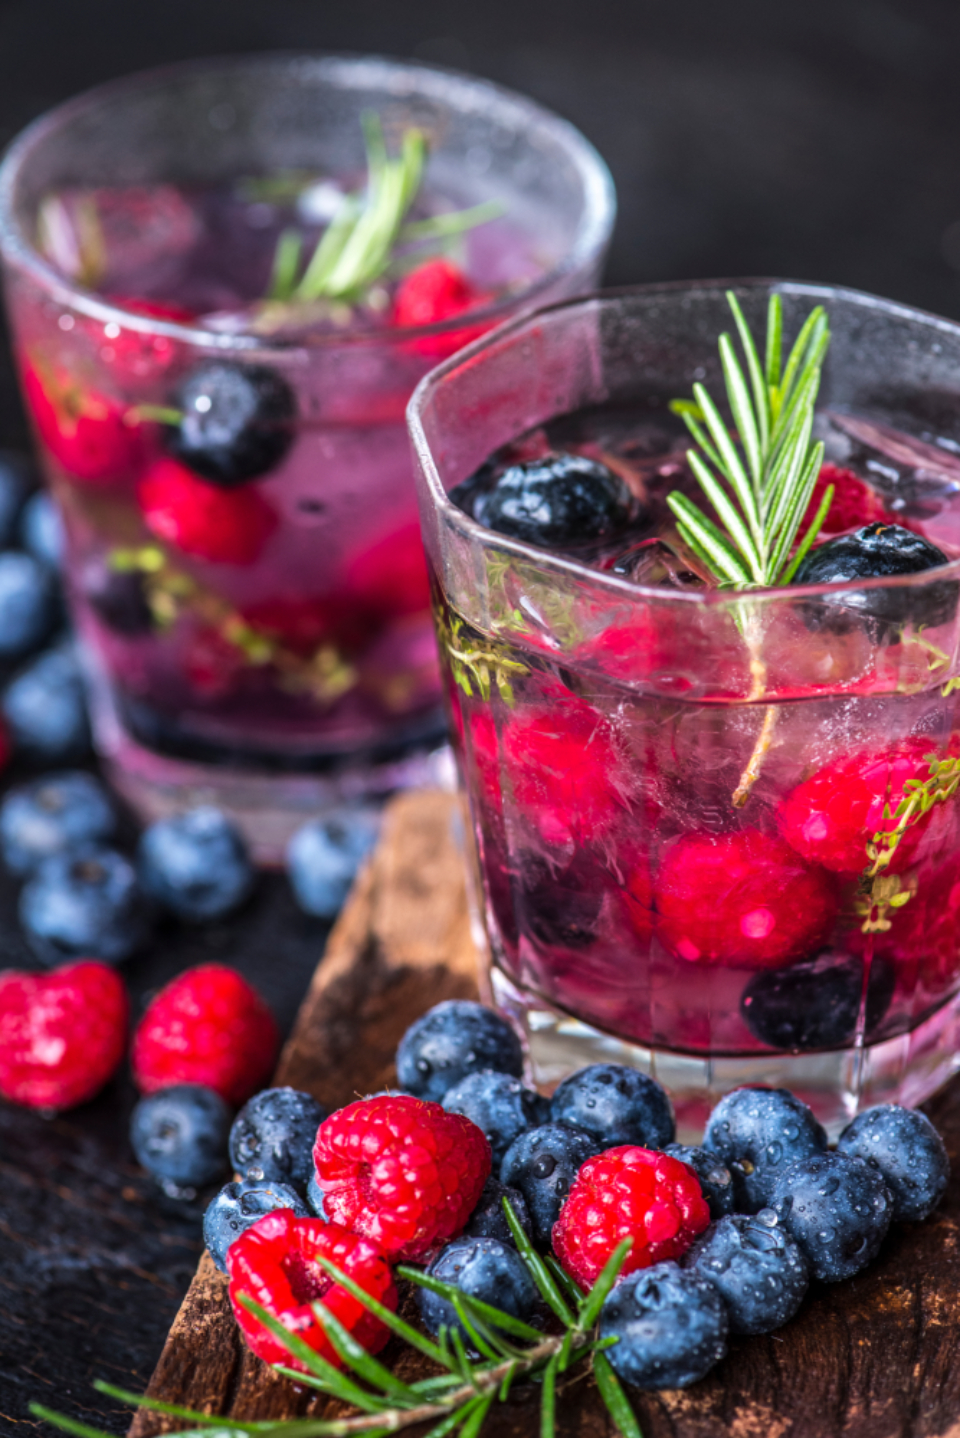 blueberry cold water detox detox drink detox water drink drinking flavored food photography fresh freshness fruit fruit flavored water fruit infused water healthcare healthy herb hydrated infused water ingredients juice mac